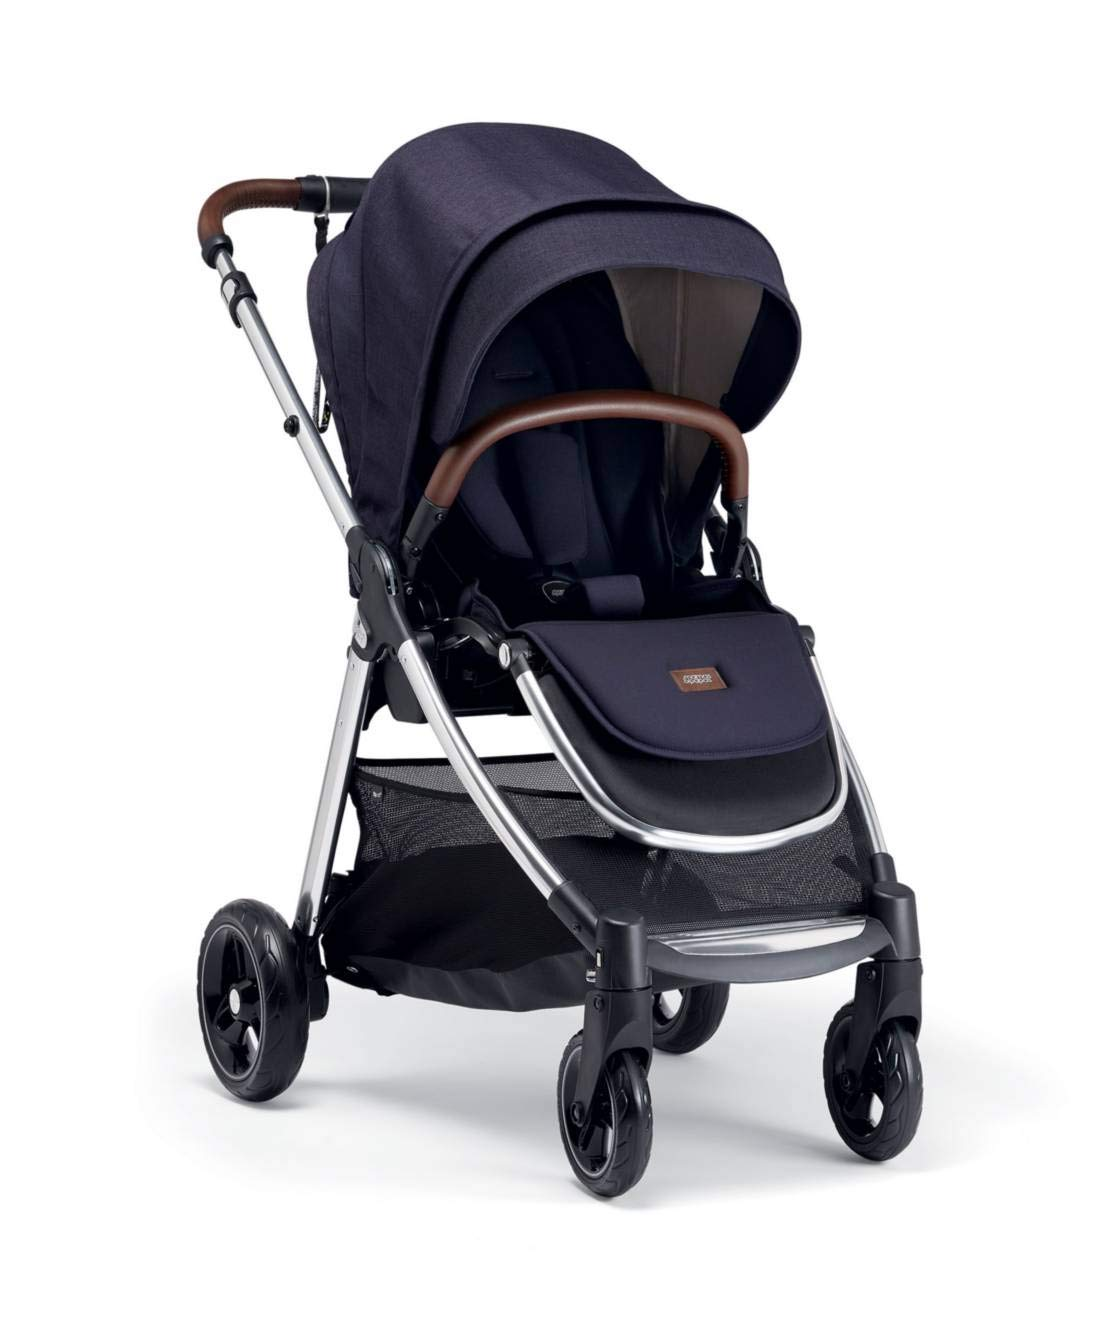 Mamas & Papas Flip XT3 Pushchair - Dark Navy Mamas & Papas PUSHCHAIR - Our lightweight Flip XT3 pushchair is perfect for handling busy streets FOLDABLE - This pushchair can be stored away quick and compact with the easy one handed fold FEATURES - The lie-flat position supports natural, healthy sleep while the UPF 50+ large hood & air vent provides cooling protection from the sun 1